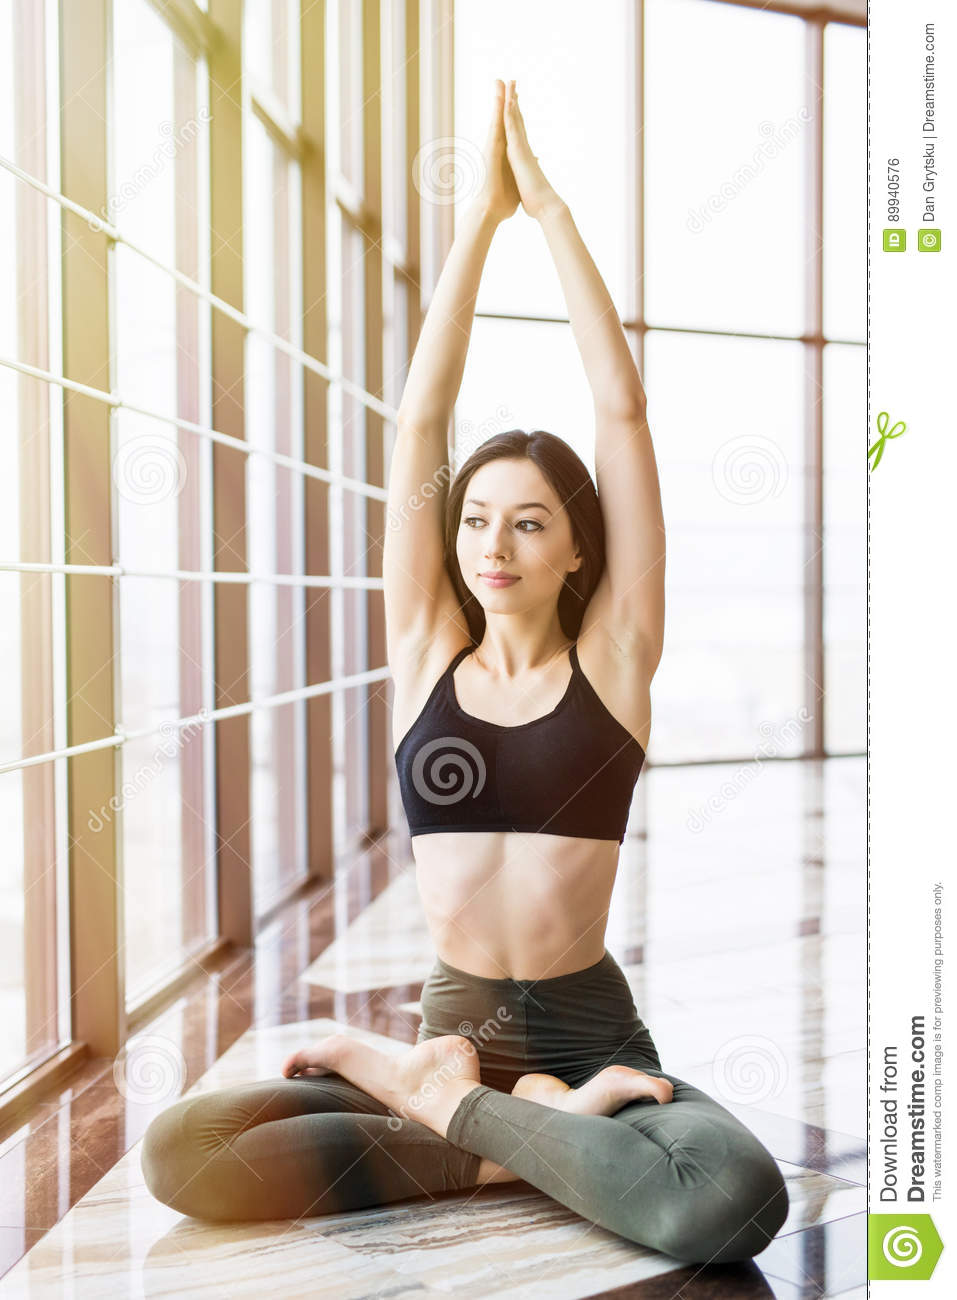 Young beautiful woman doing yoga padmasana in yoga studio. Sport health concept.